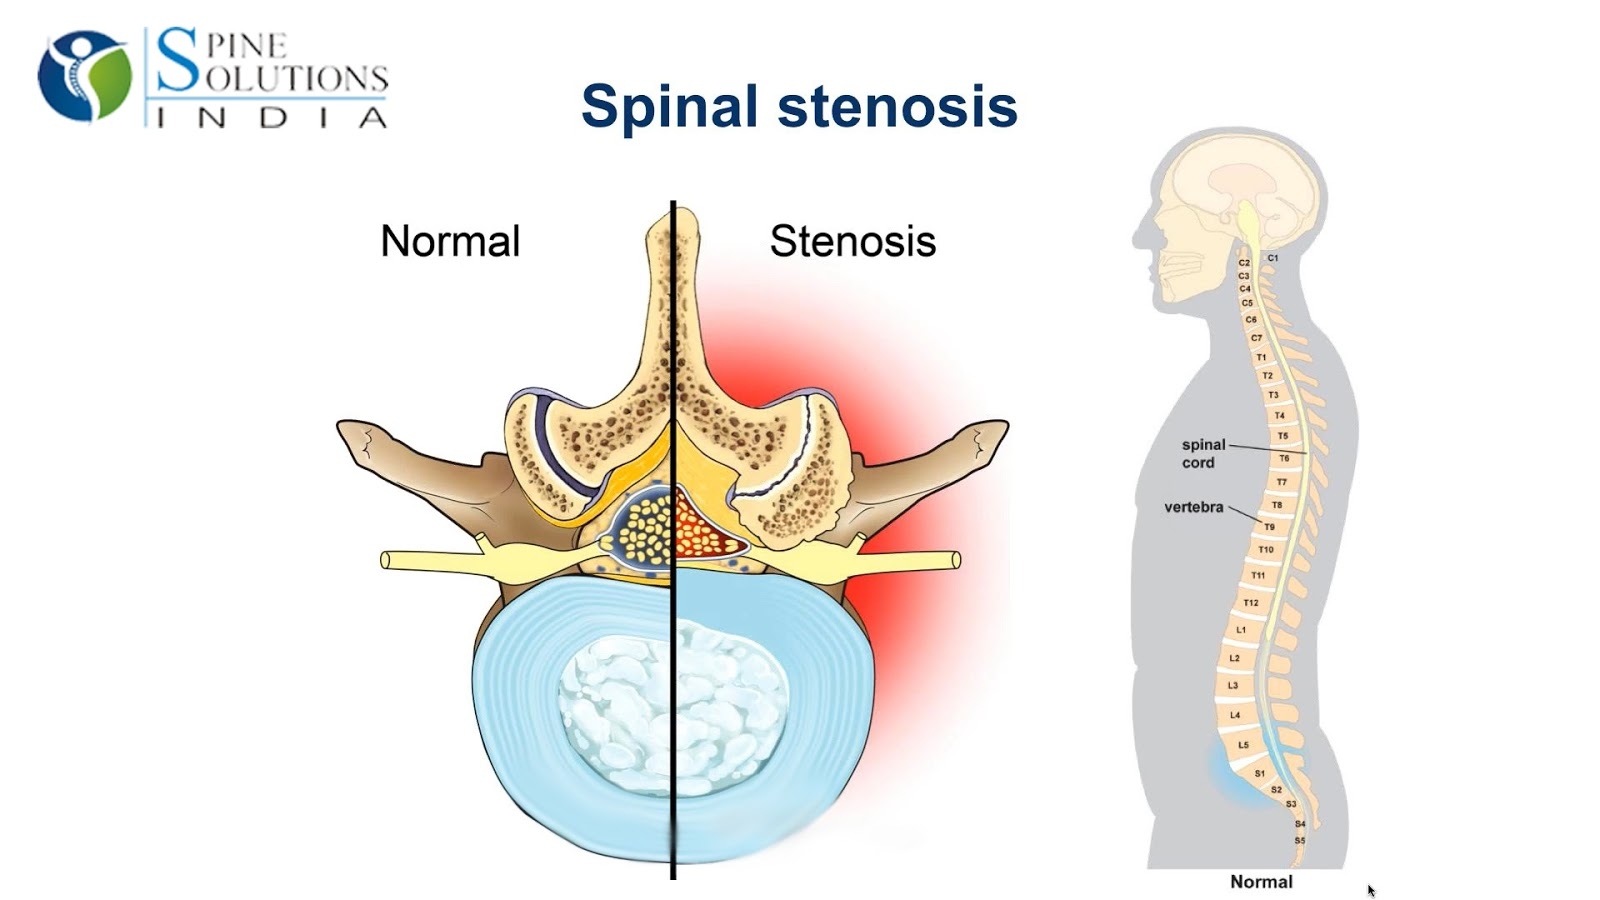 10 Symptoms of Spinal Stenosis